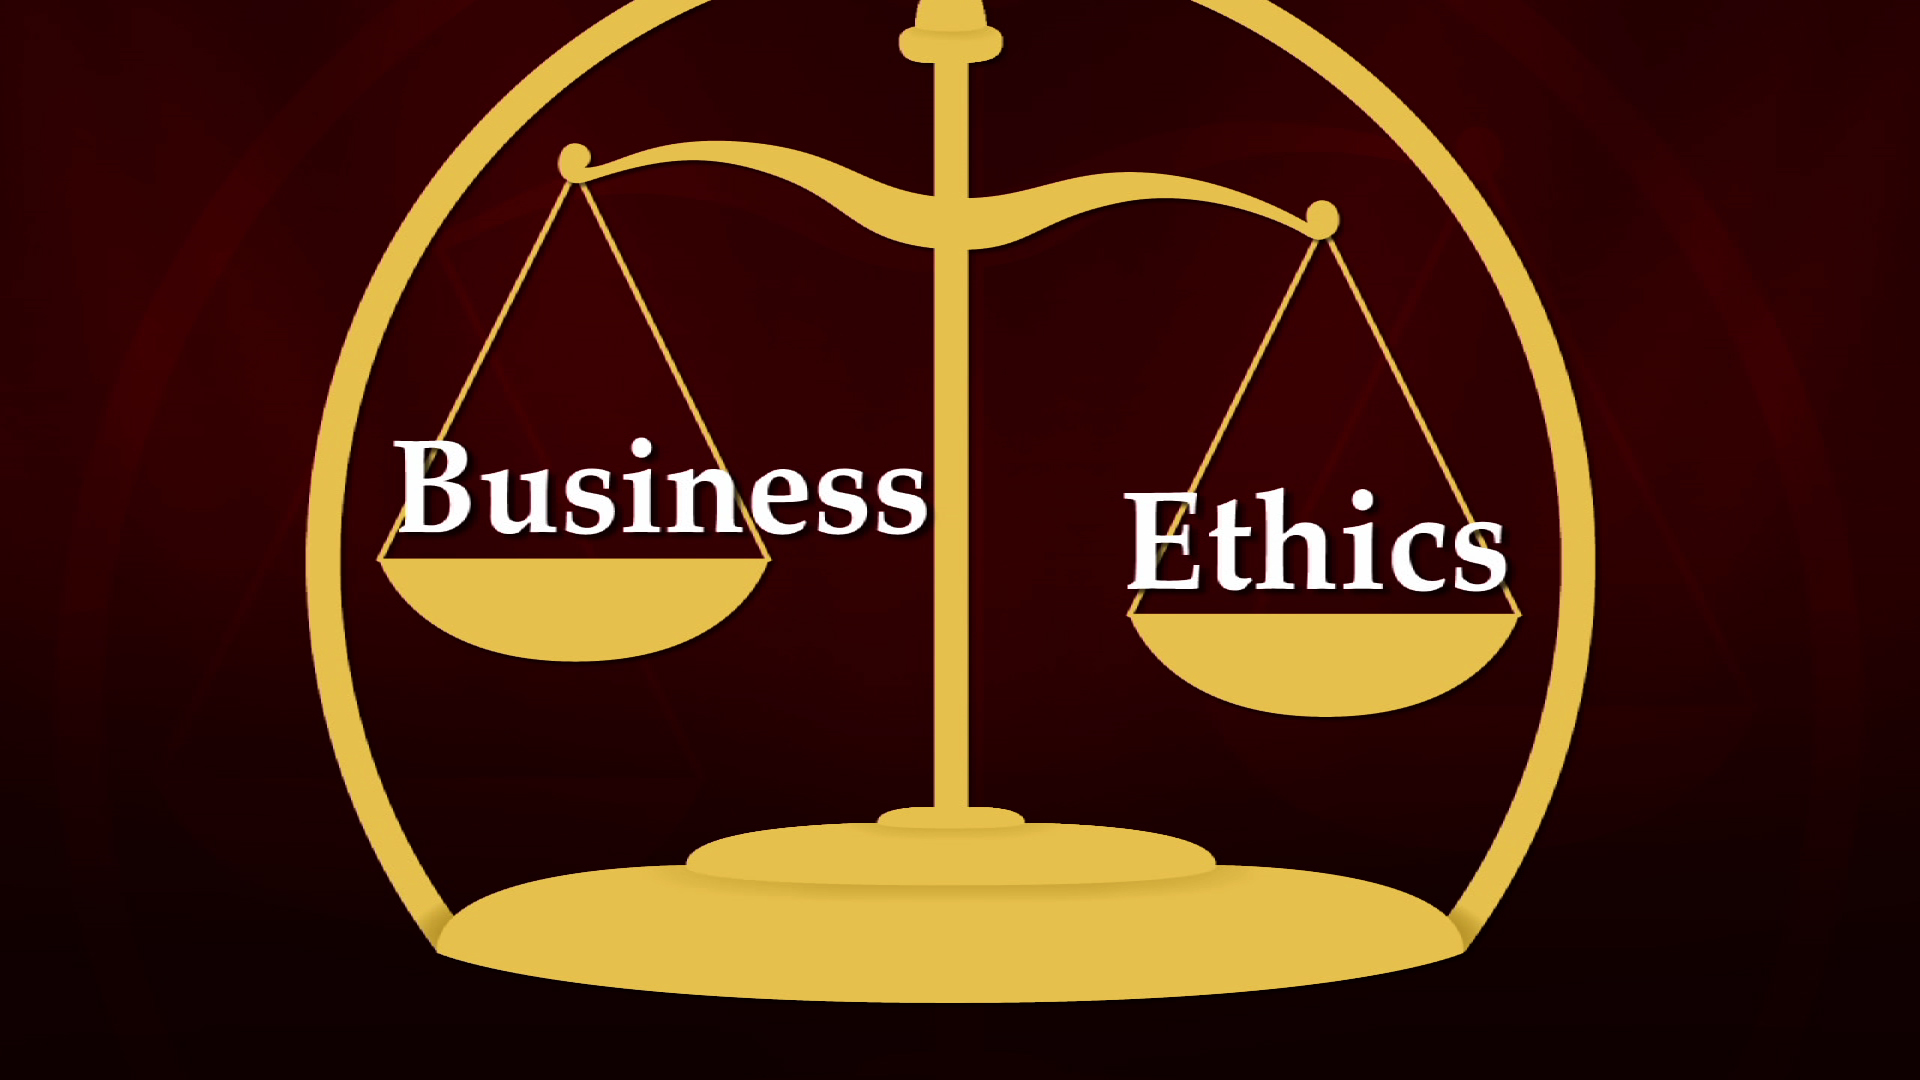 various ethical and legal issues in business communication Business communicationbusiness communication and legal issuesand legal issues slideshare uses cookies to improve functionality and performance, and to provide you with relevant advertising if you continue browsing the site, you agree to the use of cookies on this website.